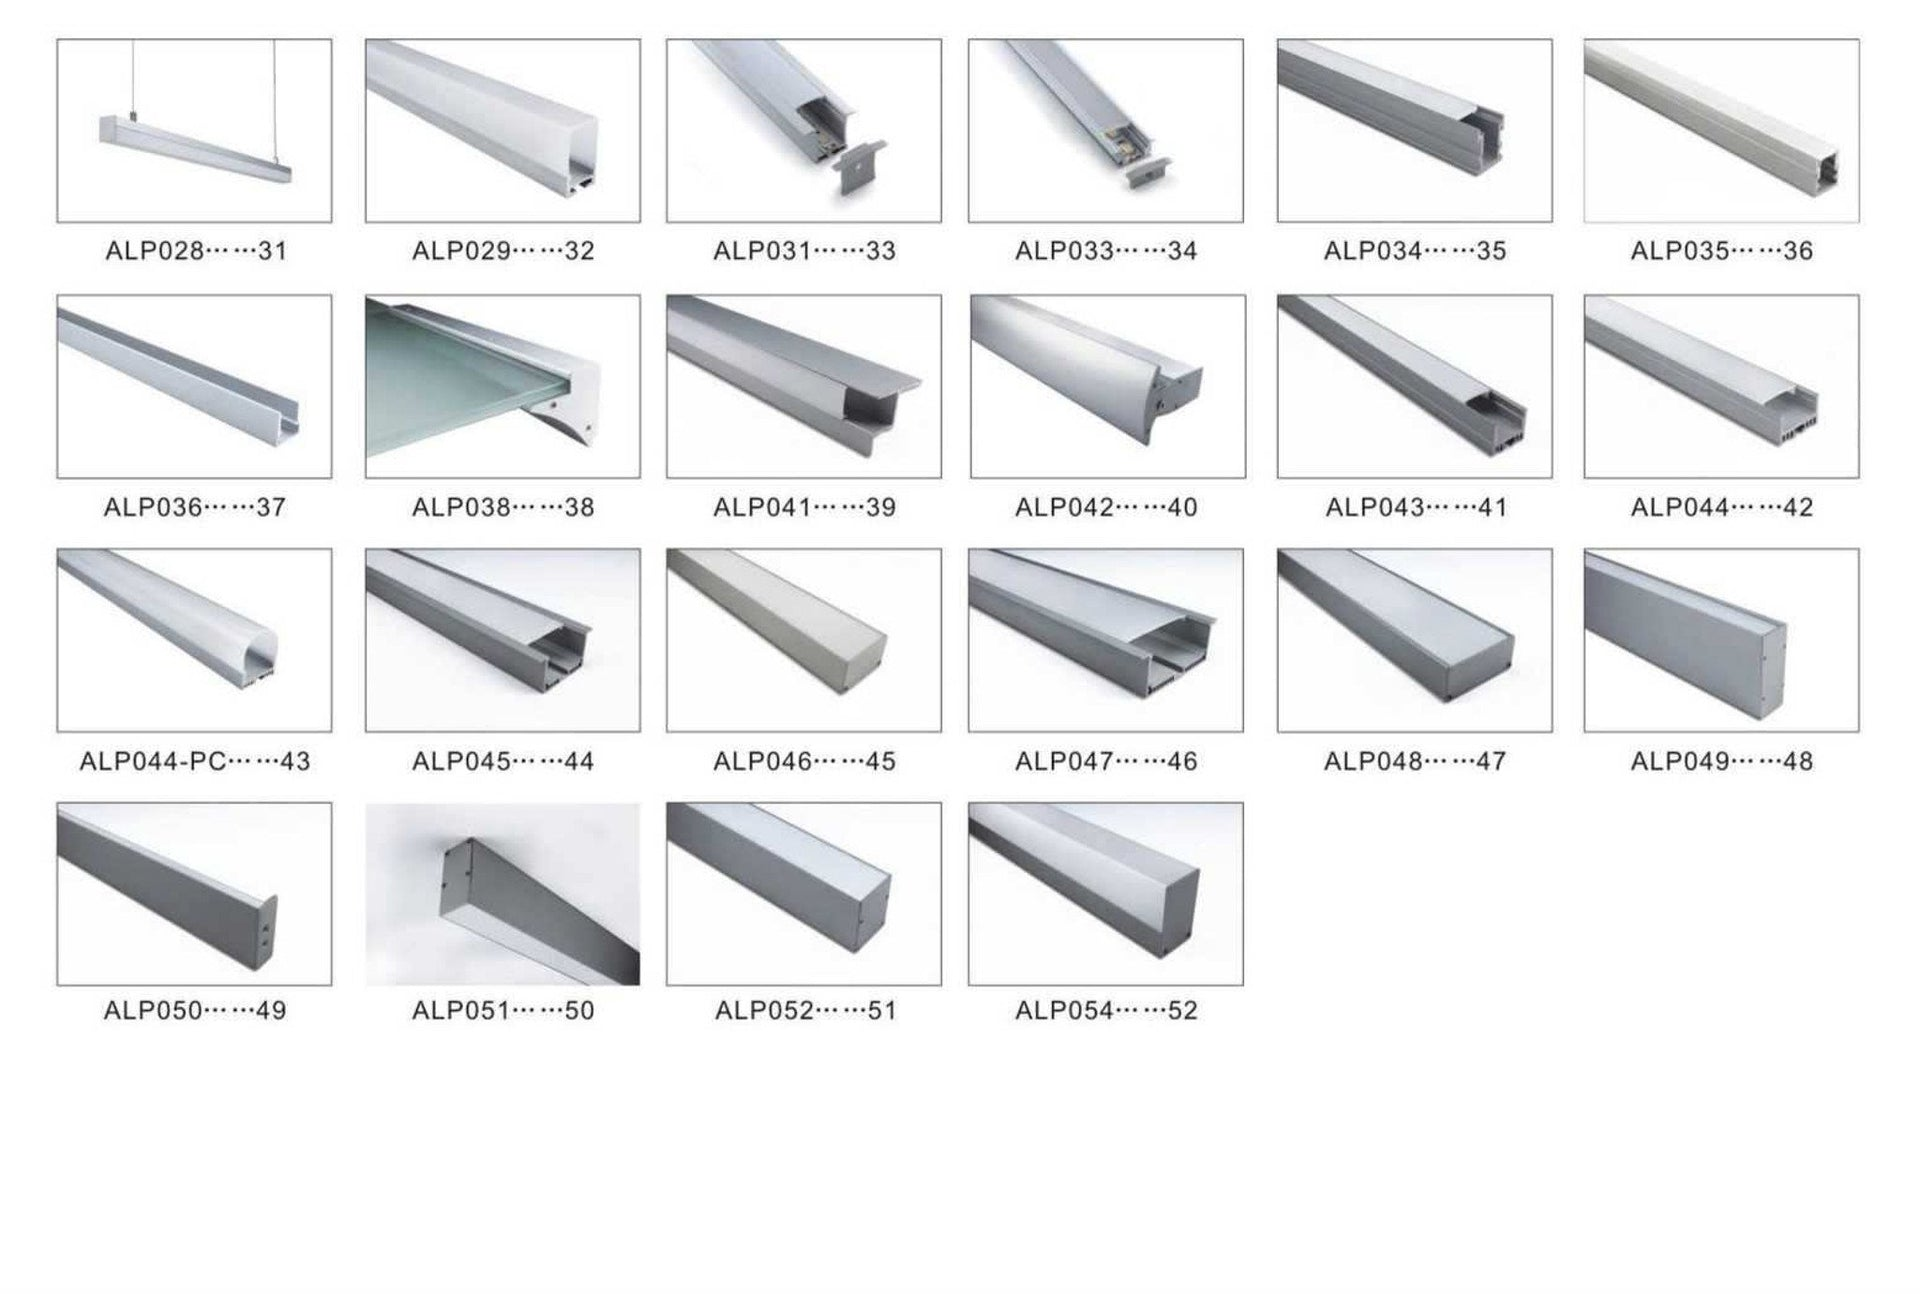 Aluminium Profile for LED Lighting - P006